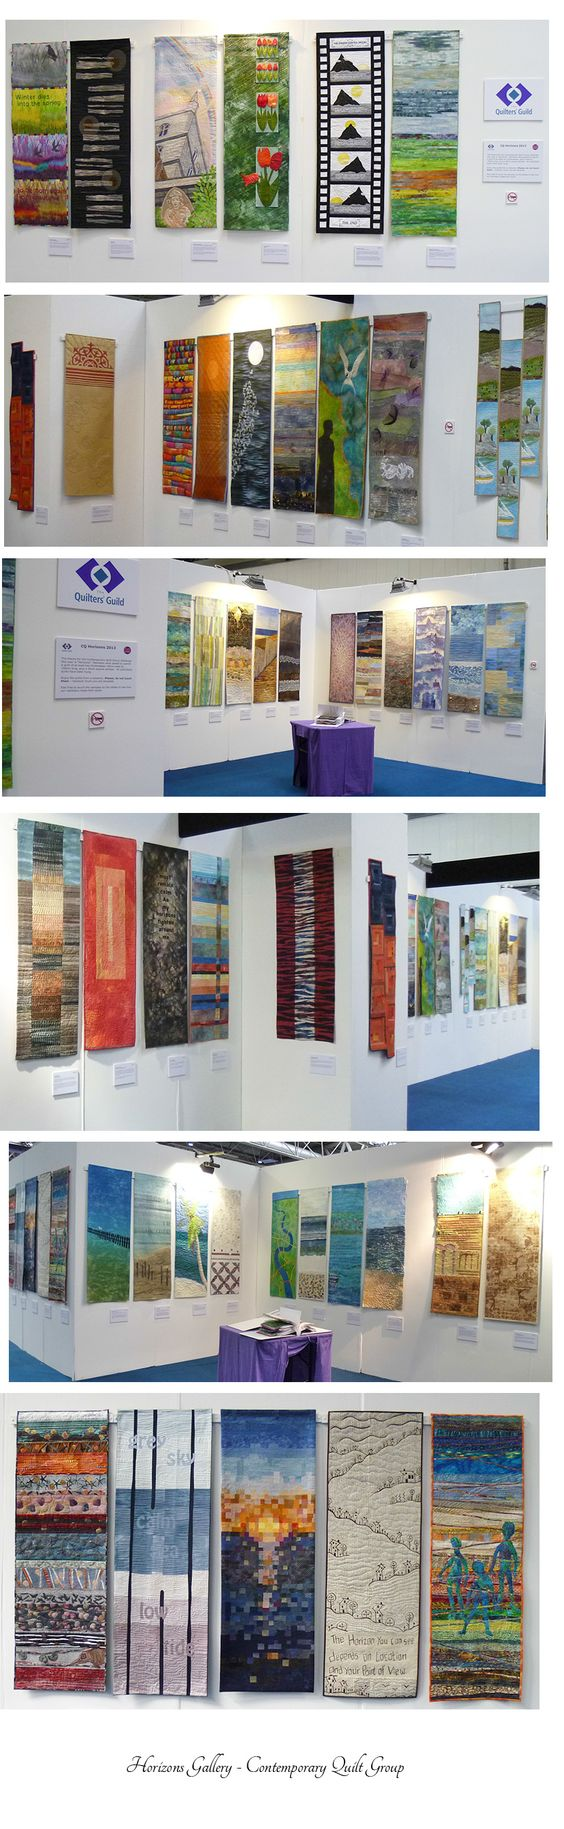 Horizons exhibition by members of the Contemporary group of the Quilters' guild